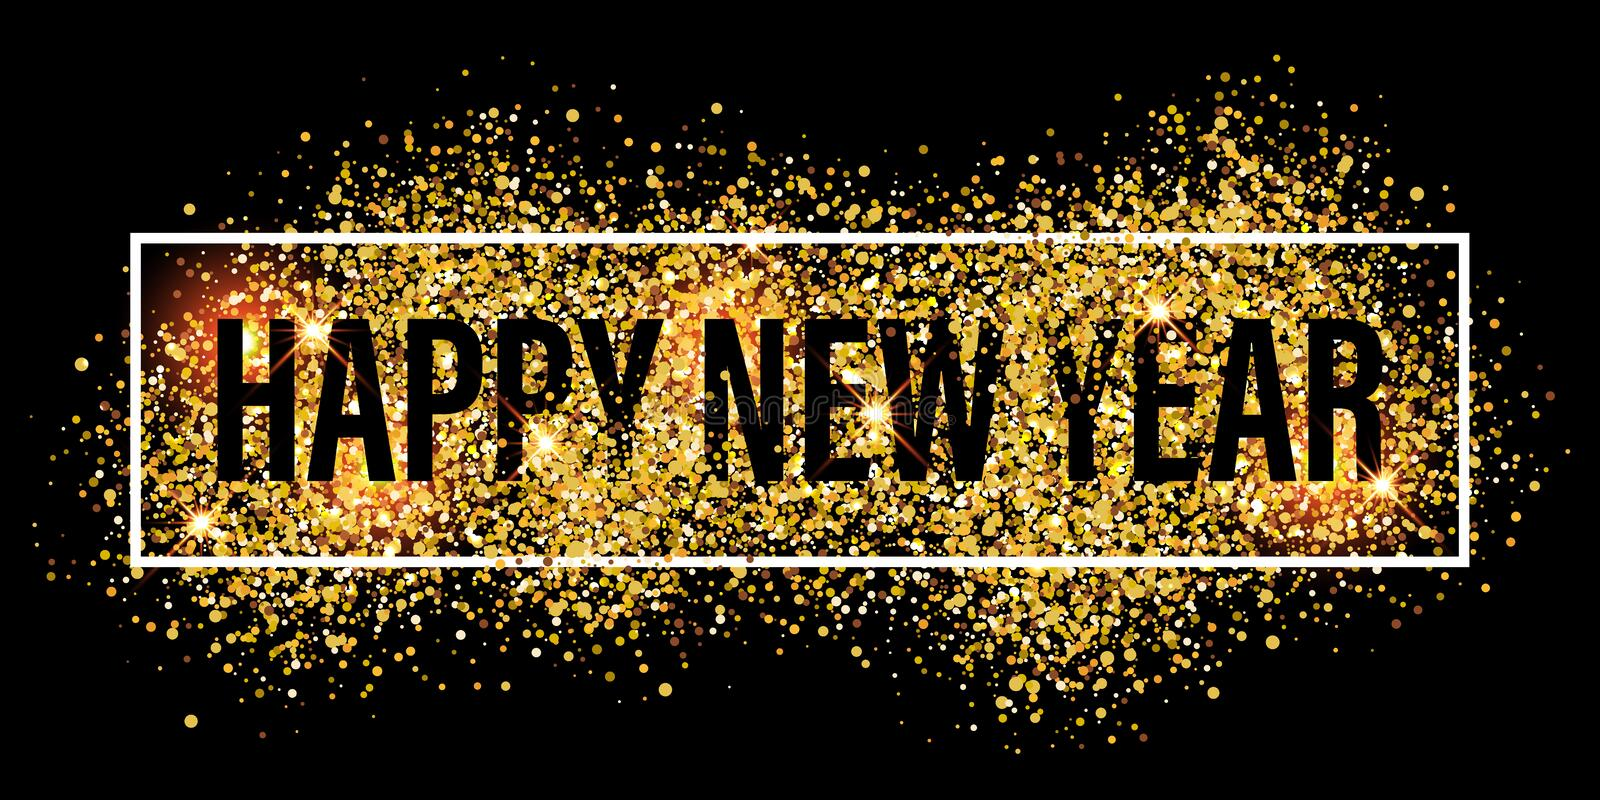 Gold glitter flare spray texture new year background. royalty free illustration